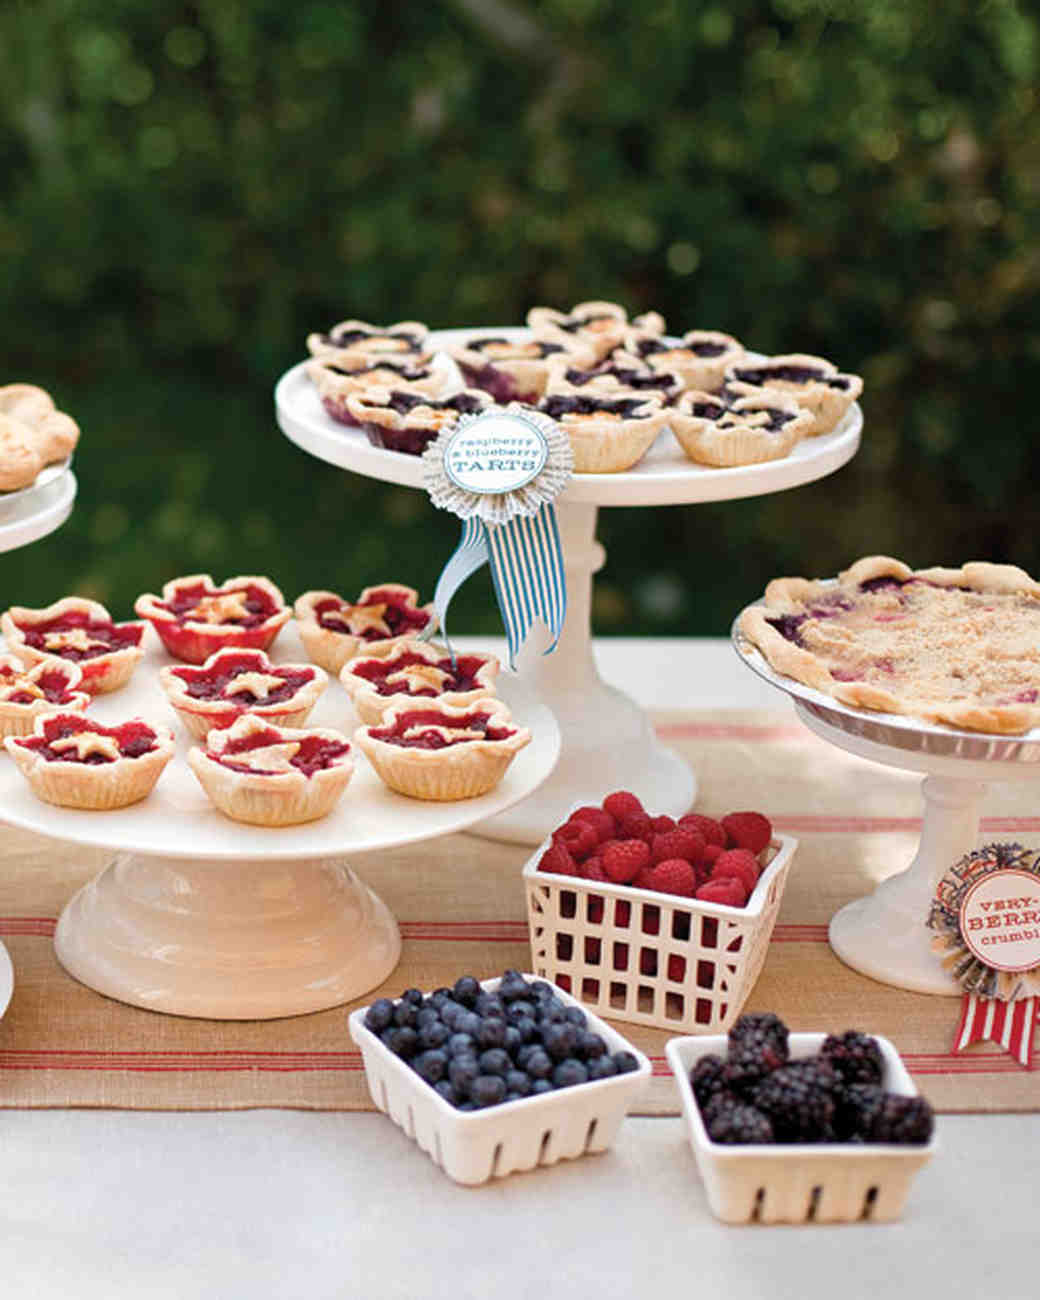 Want to offer more than just cake at your wedding reception? Check out tons of creative (and delicious!) ways to serve all of your favorite sweets on the big da